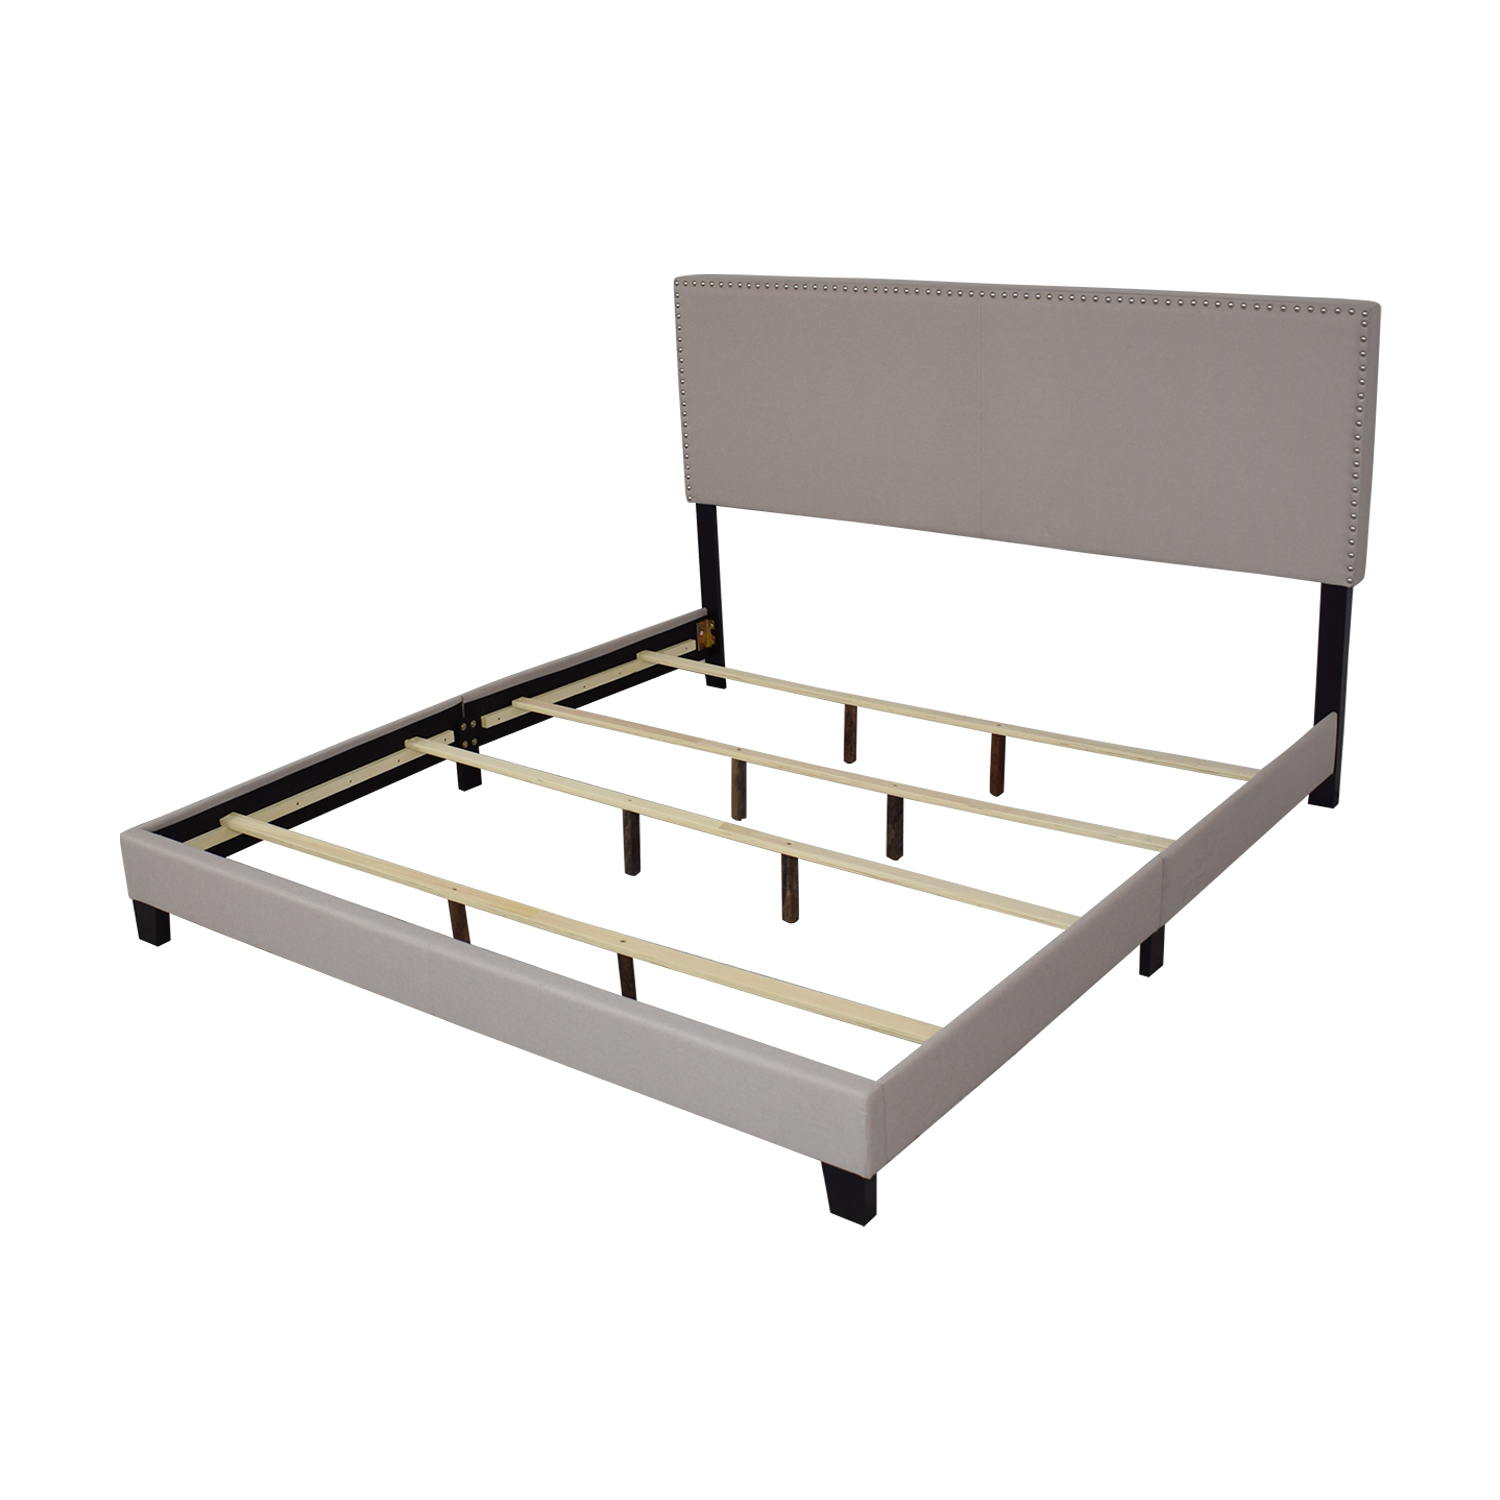 Raymour & Flanigan Raymour & Flanigan Platform King Linen Bed price